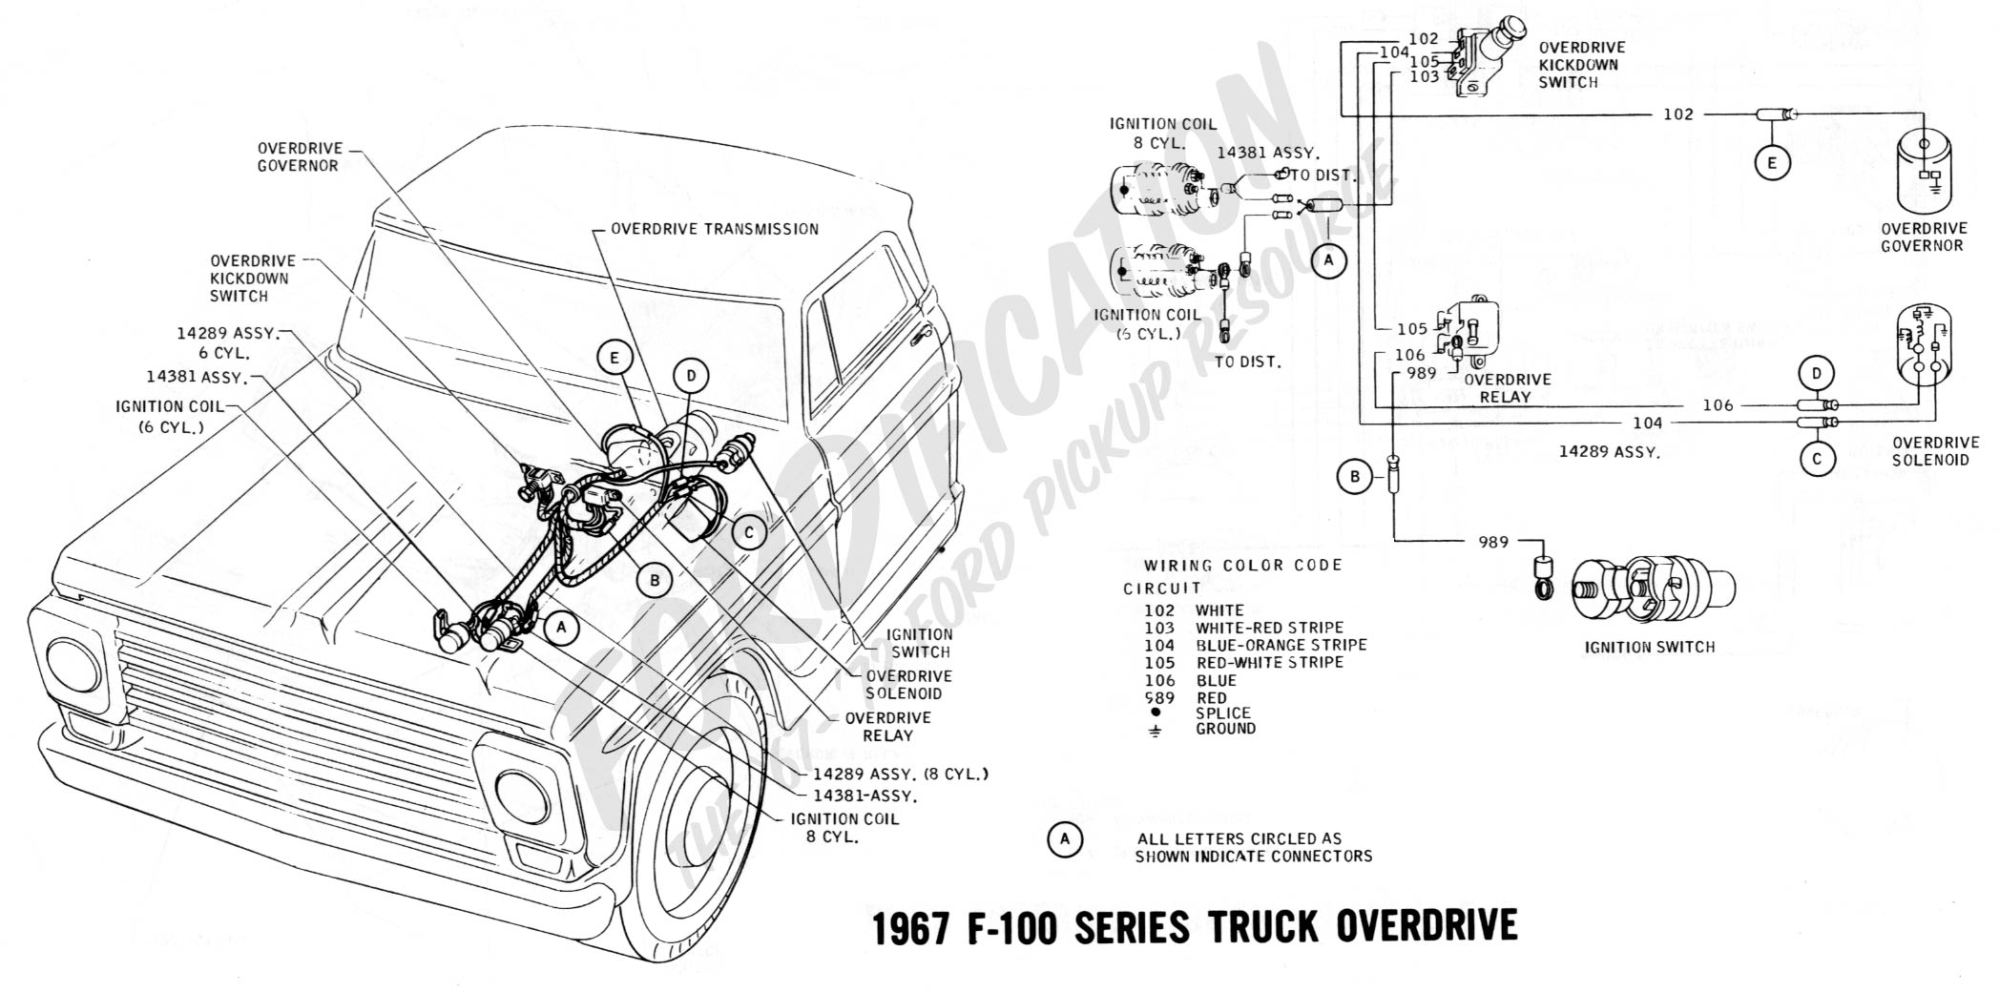 hight resolution of 1968 f100 wiring diagram wiring diagram schemes 1970 ford steering column wiring diagram ford steering column